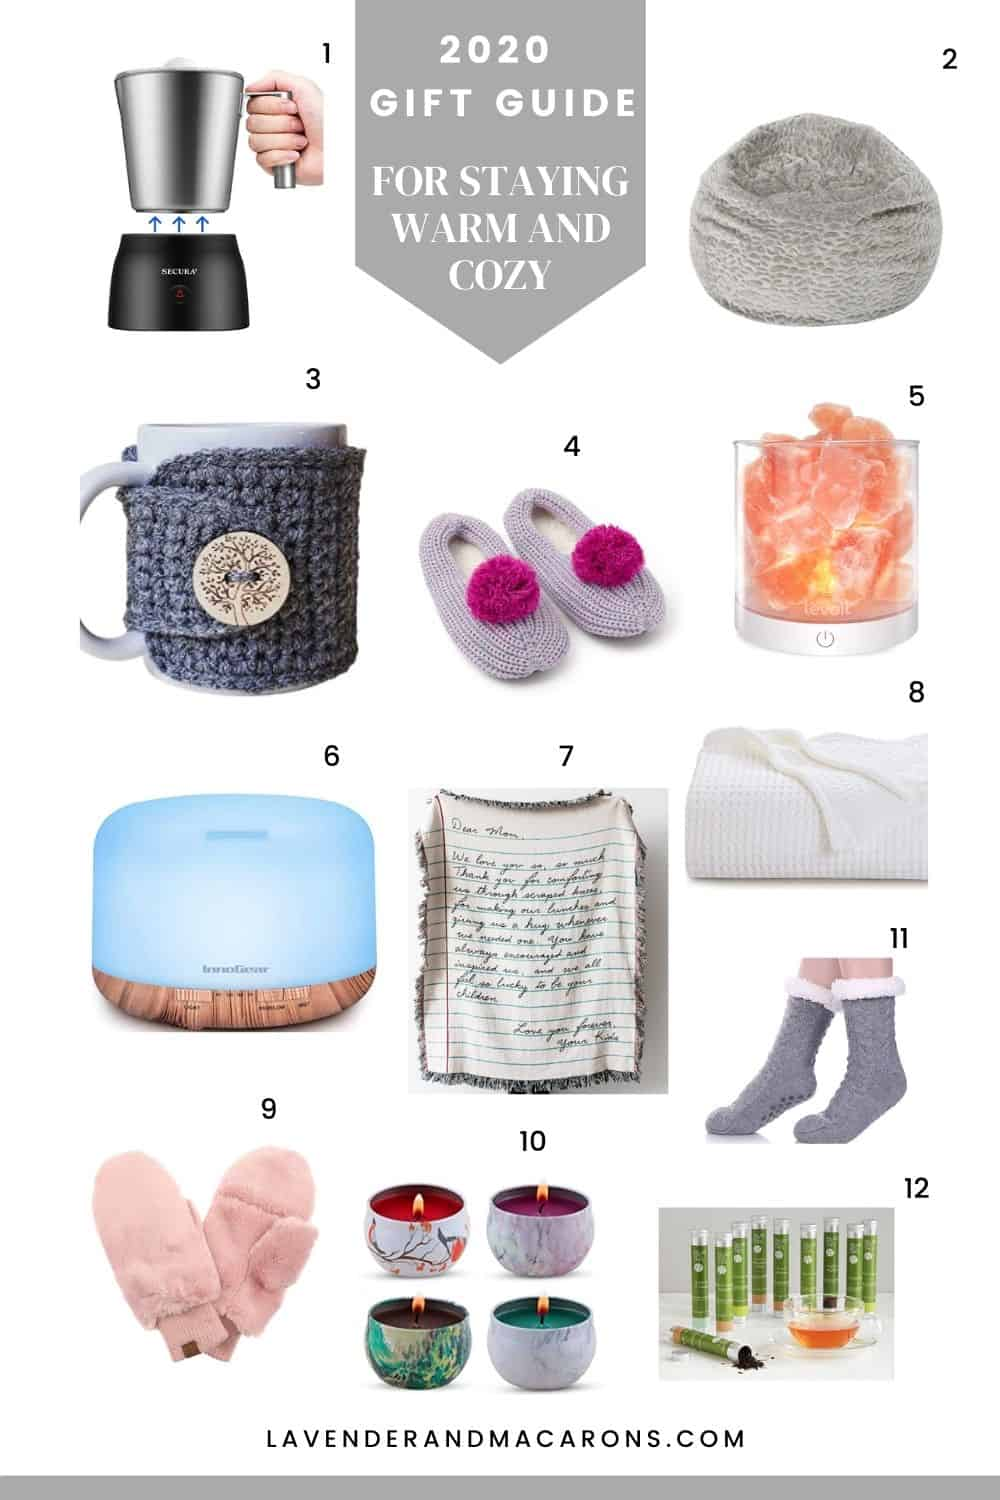 2020 gifts for staying warm and cozy